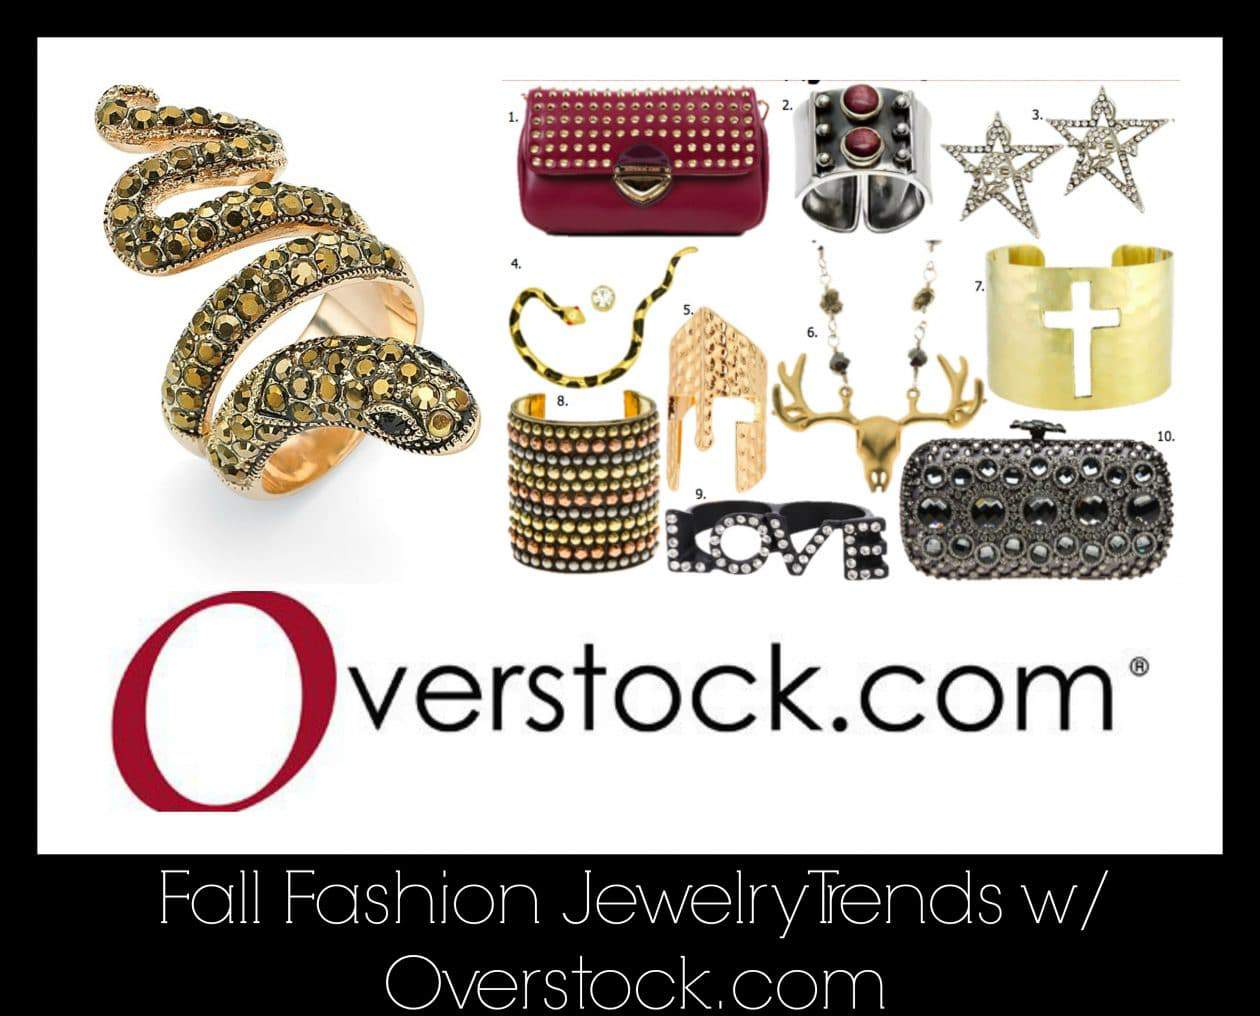 Have You Checked out Overstock.com's Jewelry? Fall Trends on the Score!